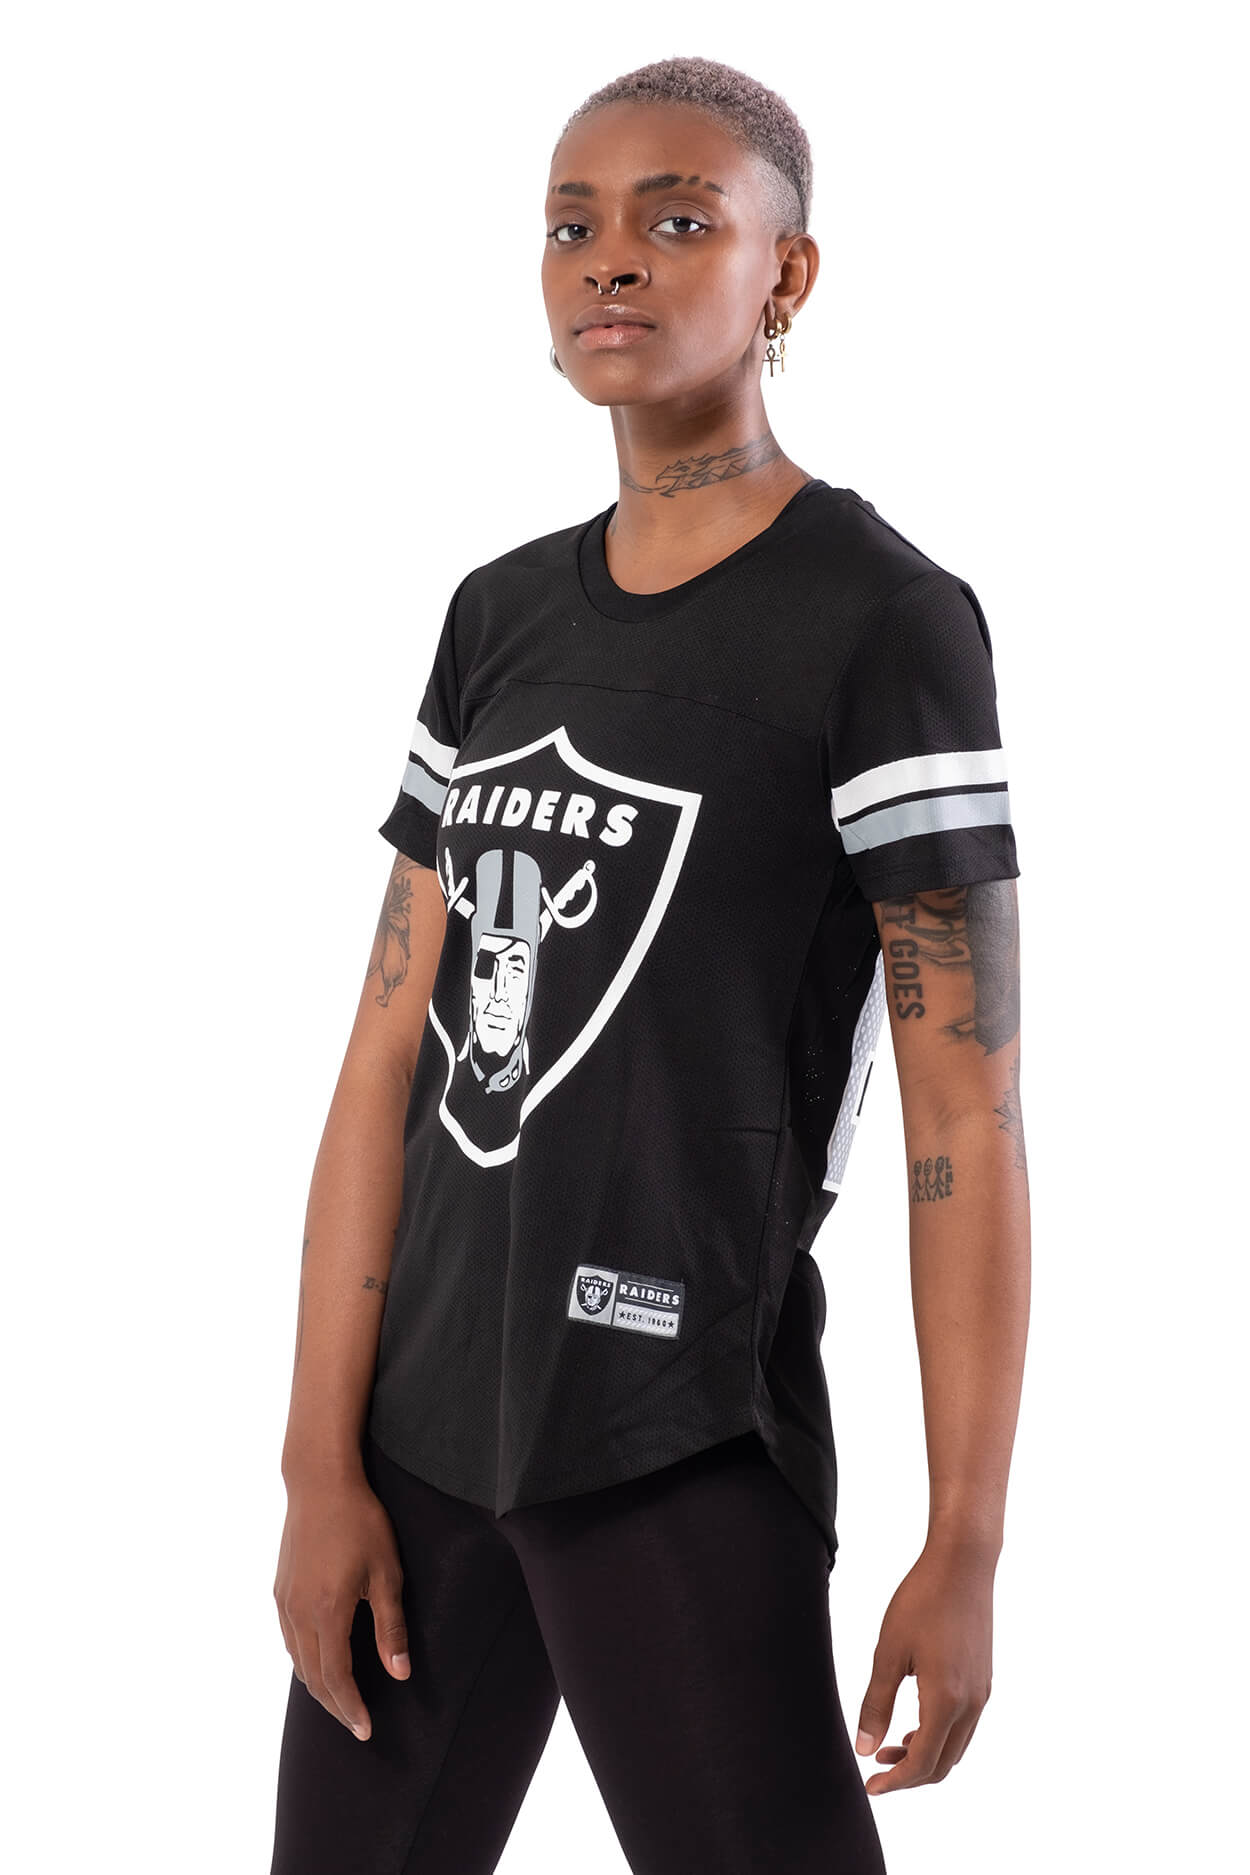 NFL Oakland Raiders Women's Varsity Stripe Tee|Oakland Raiders